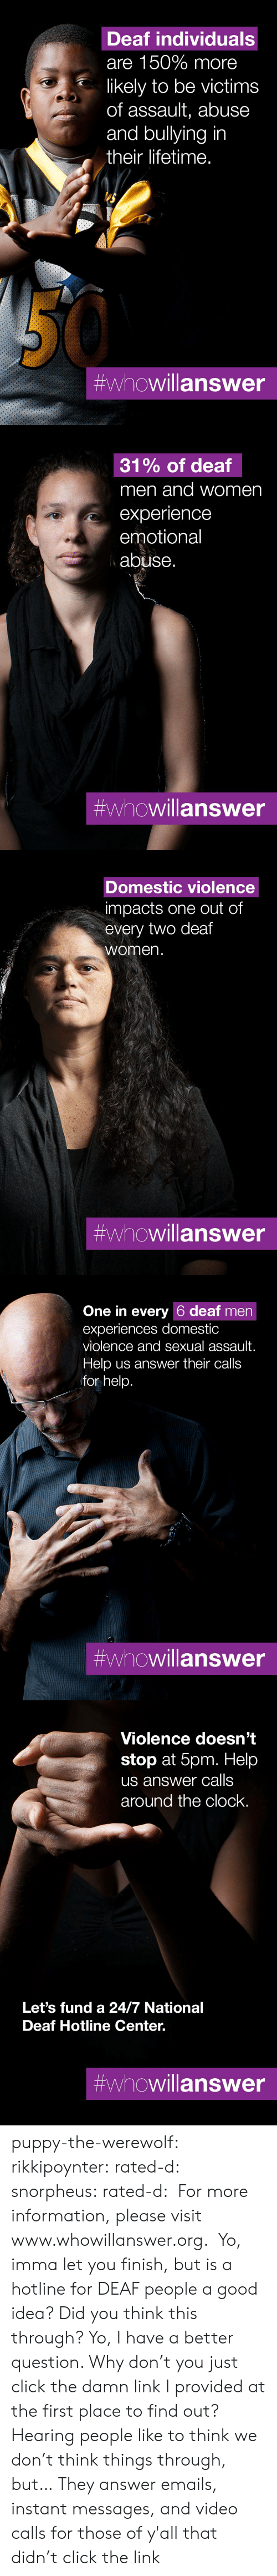 werewolf: Deaf individuals  are 150% more  likely to be victims  of assault, abuse  and bullying in  their lifetime.  #whowillanswer   31% of deaf  men and women  experience  emotional  abuse.  #whowillanswer   Domestic violence  impacts one out of  every two deaf  women.  #whowillanswer   One in every 6 deaf men  experiences domestic  violence and sexual assault.  Help us answer their calls  for help.  #whowillanswer   Violence doesn't  stop at 5pm. Help  us answer calls  around the clock.  Let's fund a 24/7 National  Deaf Hotline Center.  puppy-the-werewolf: rikkipoynter:  rated-d:  snorpheus:  rated-d:   For more information, please visit www.whowillanswer.org.   Yo, imma let you finish, but is a hotline for DEAF people a good idea? Did you think this through?  Yo, I have a better question. Why don't you just click the damn link I provided at the first place to find out?     Hearing people like to think we don't think things through, but…   They answer emails, instant messages, and video calls for those of y'all that didn't click the link